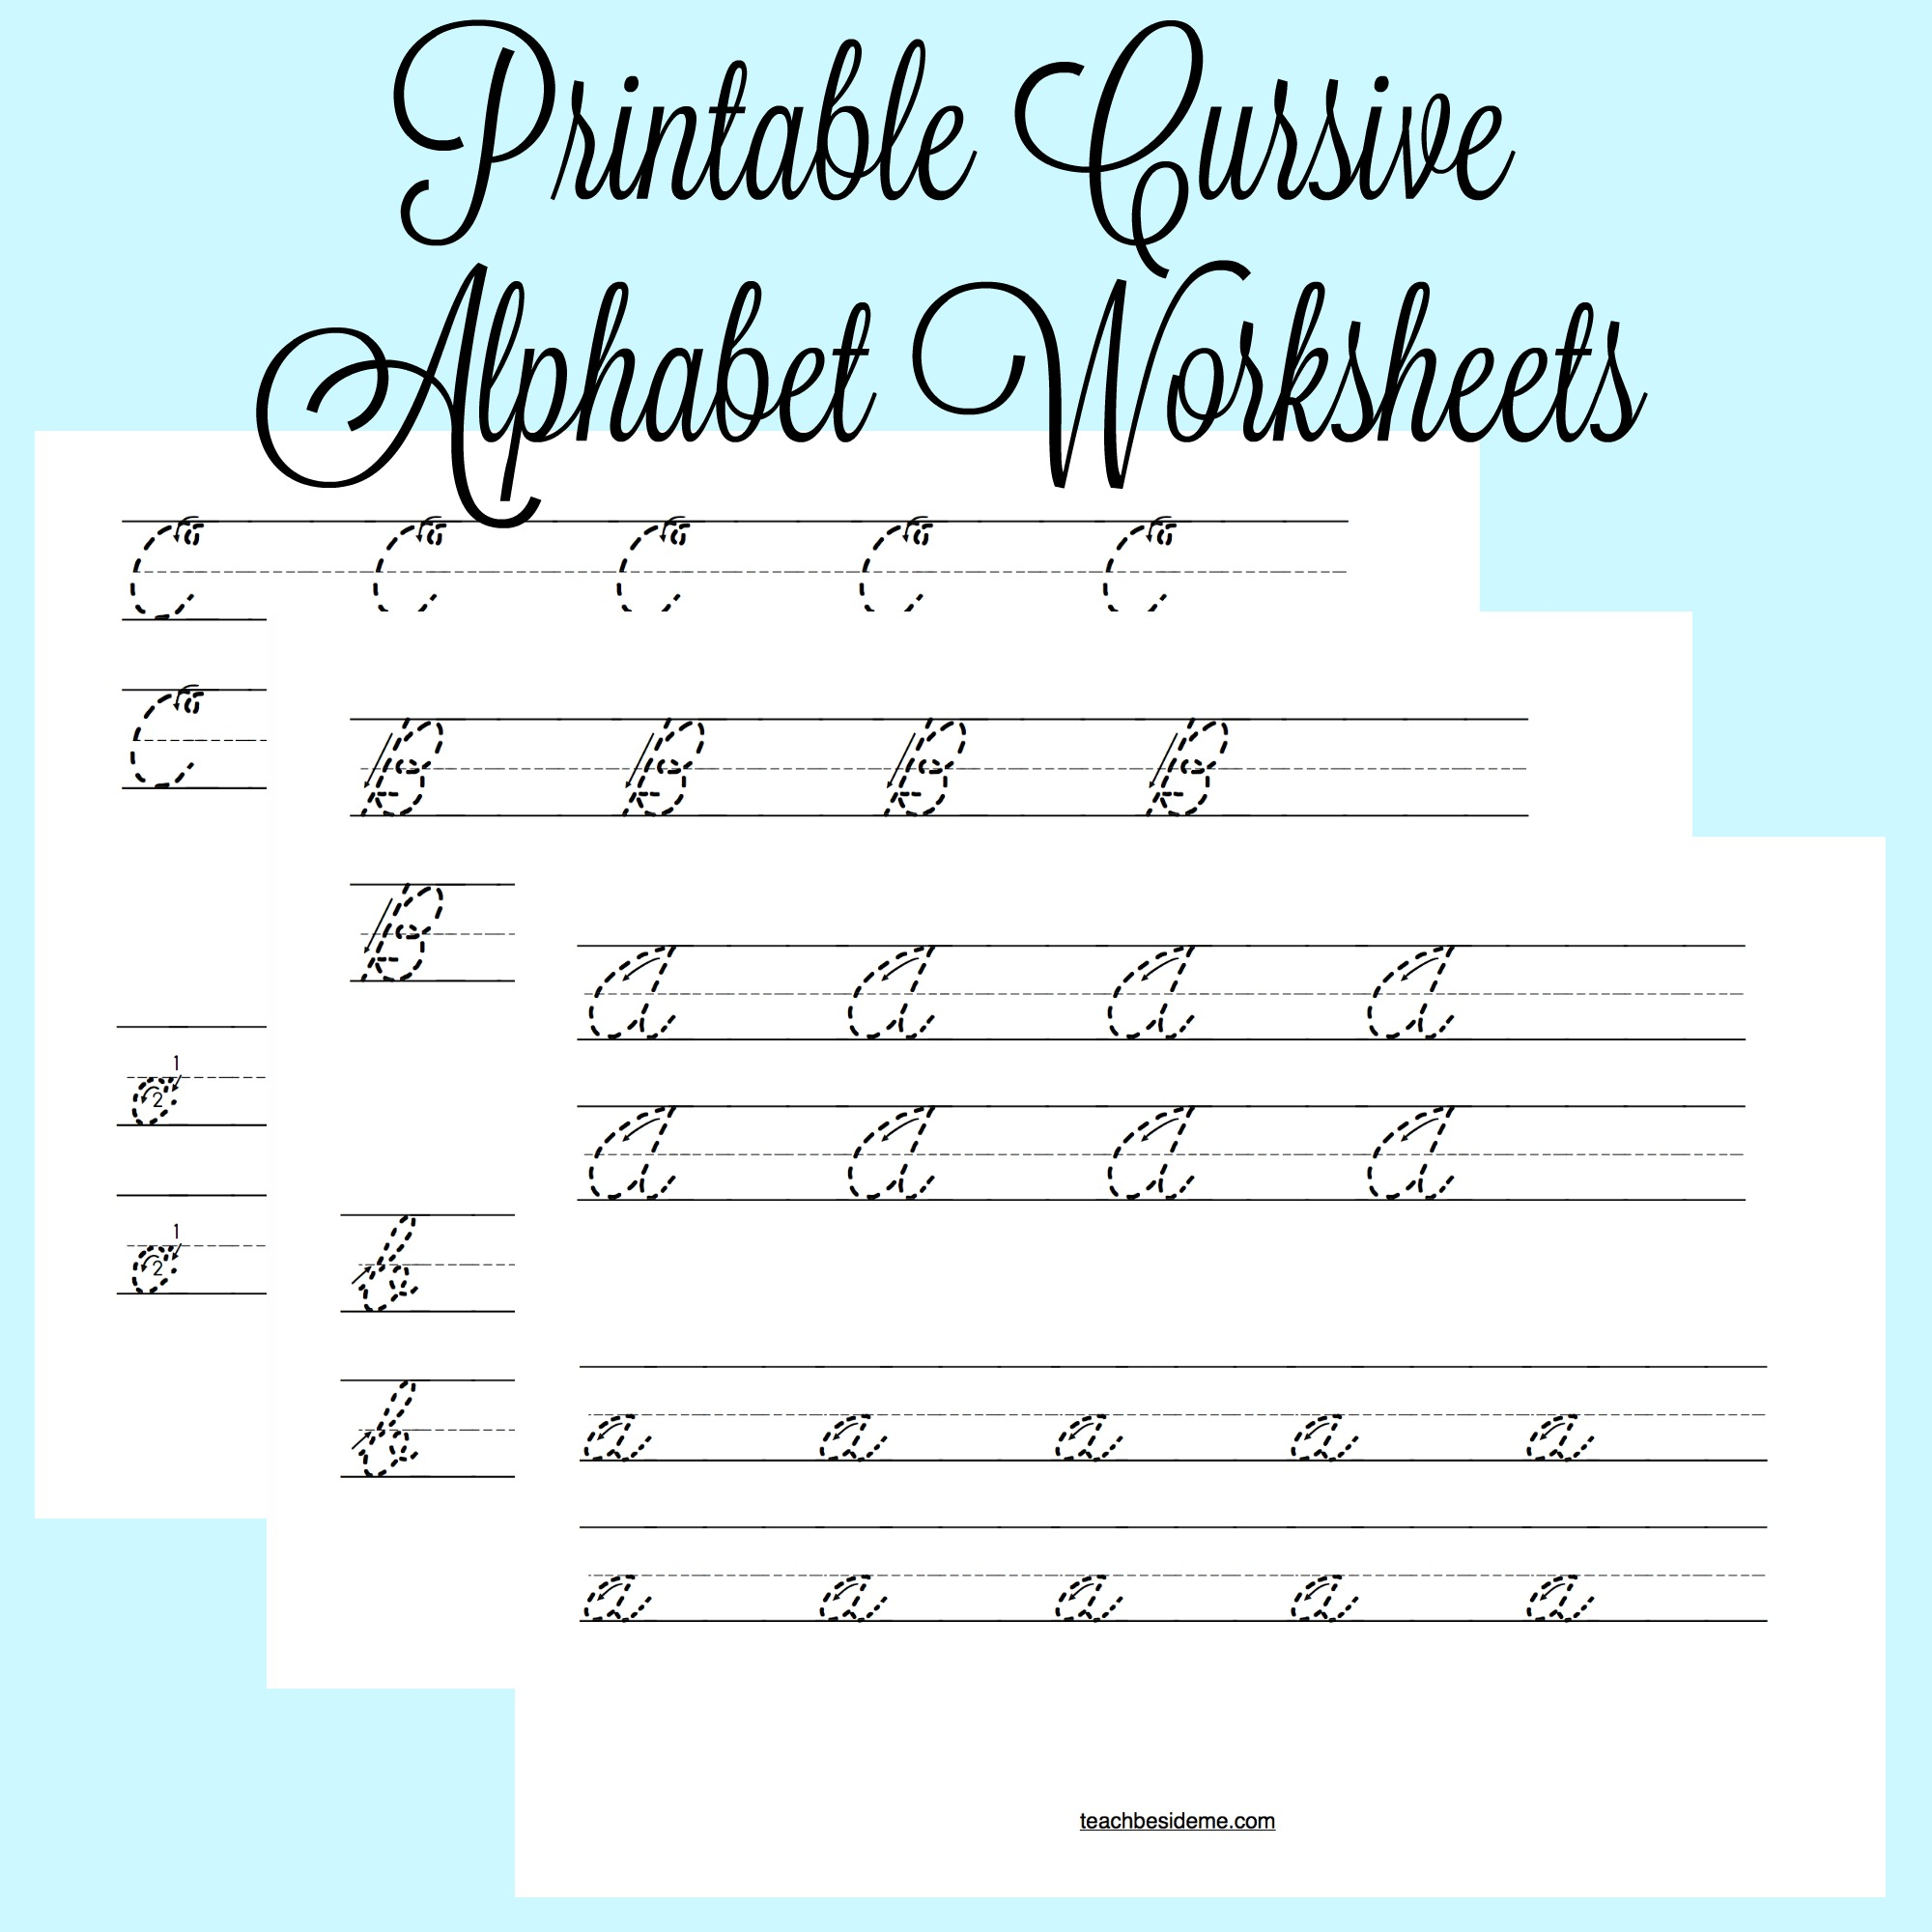 Worksheets Cursive Alphabet Worksheets printable cursive alphabet worksheets teach beside me worksheets